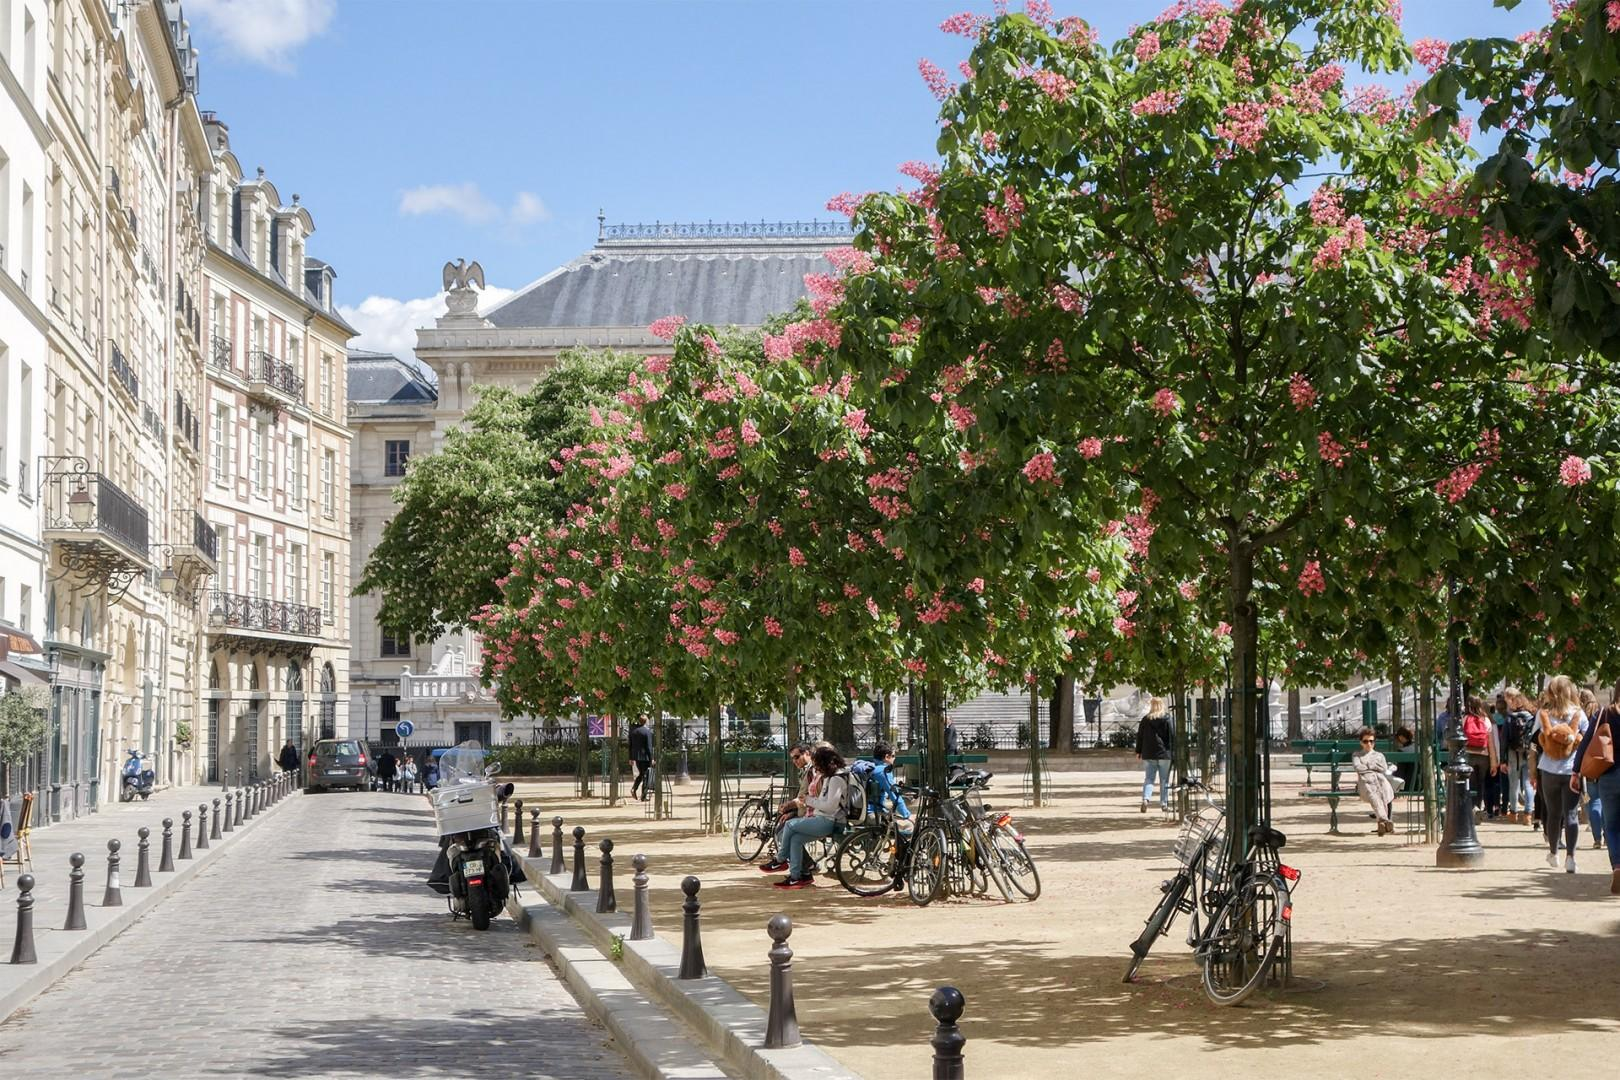 CMS-32-(Place Dauphine is one of the most romantic spots in Paris!)-Madelyn-place-dauphine-2